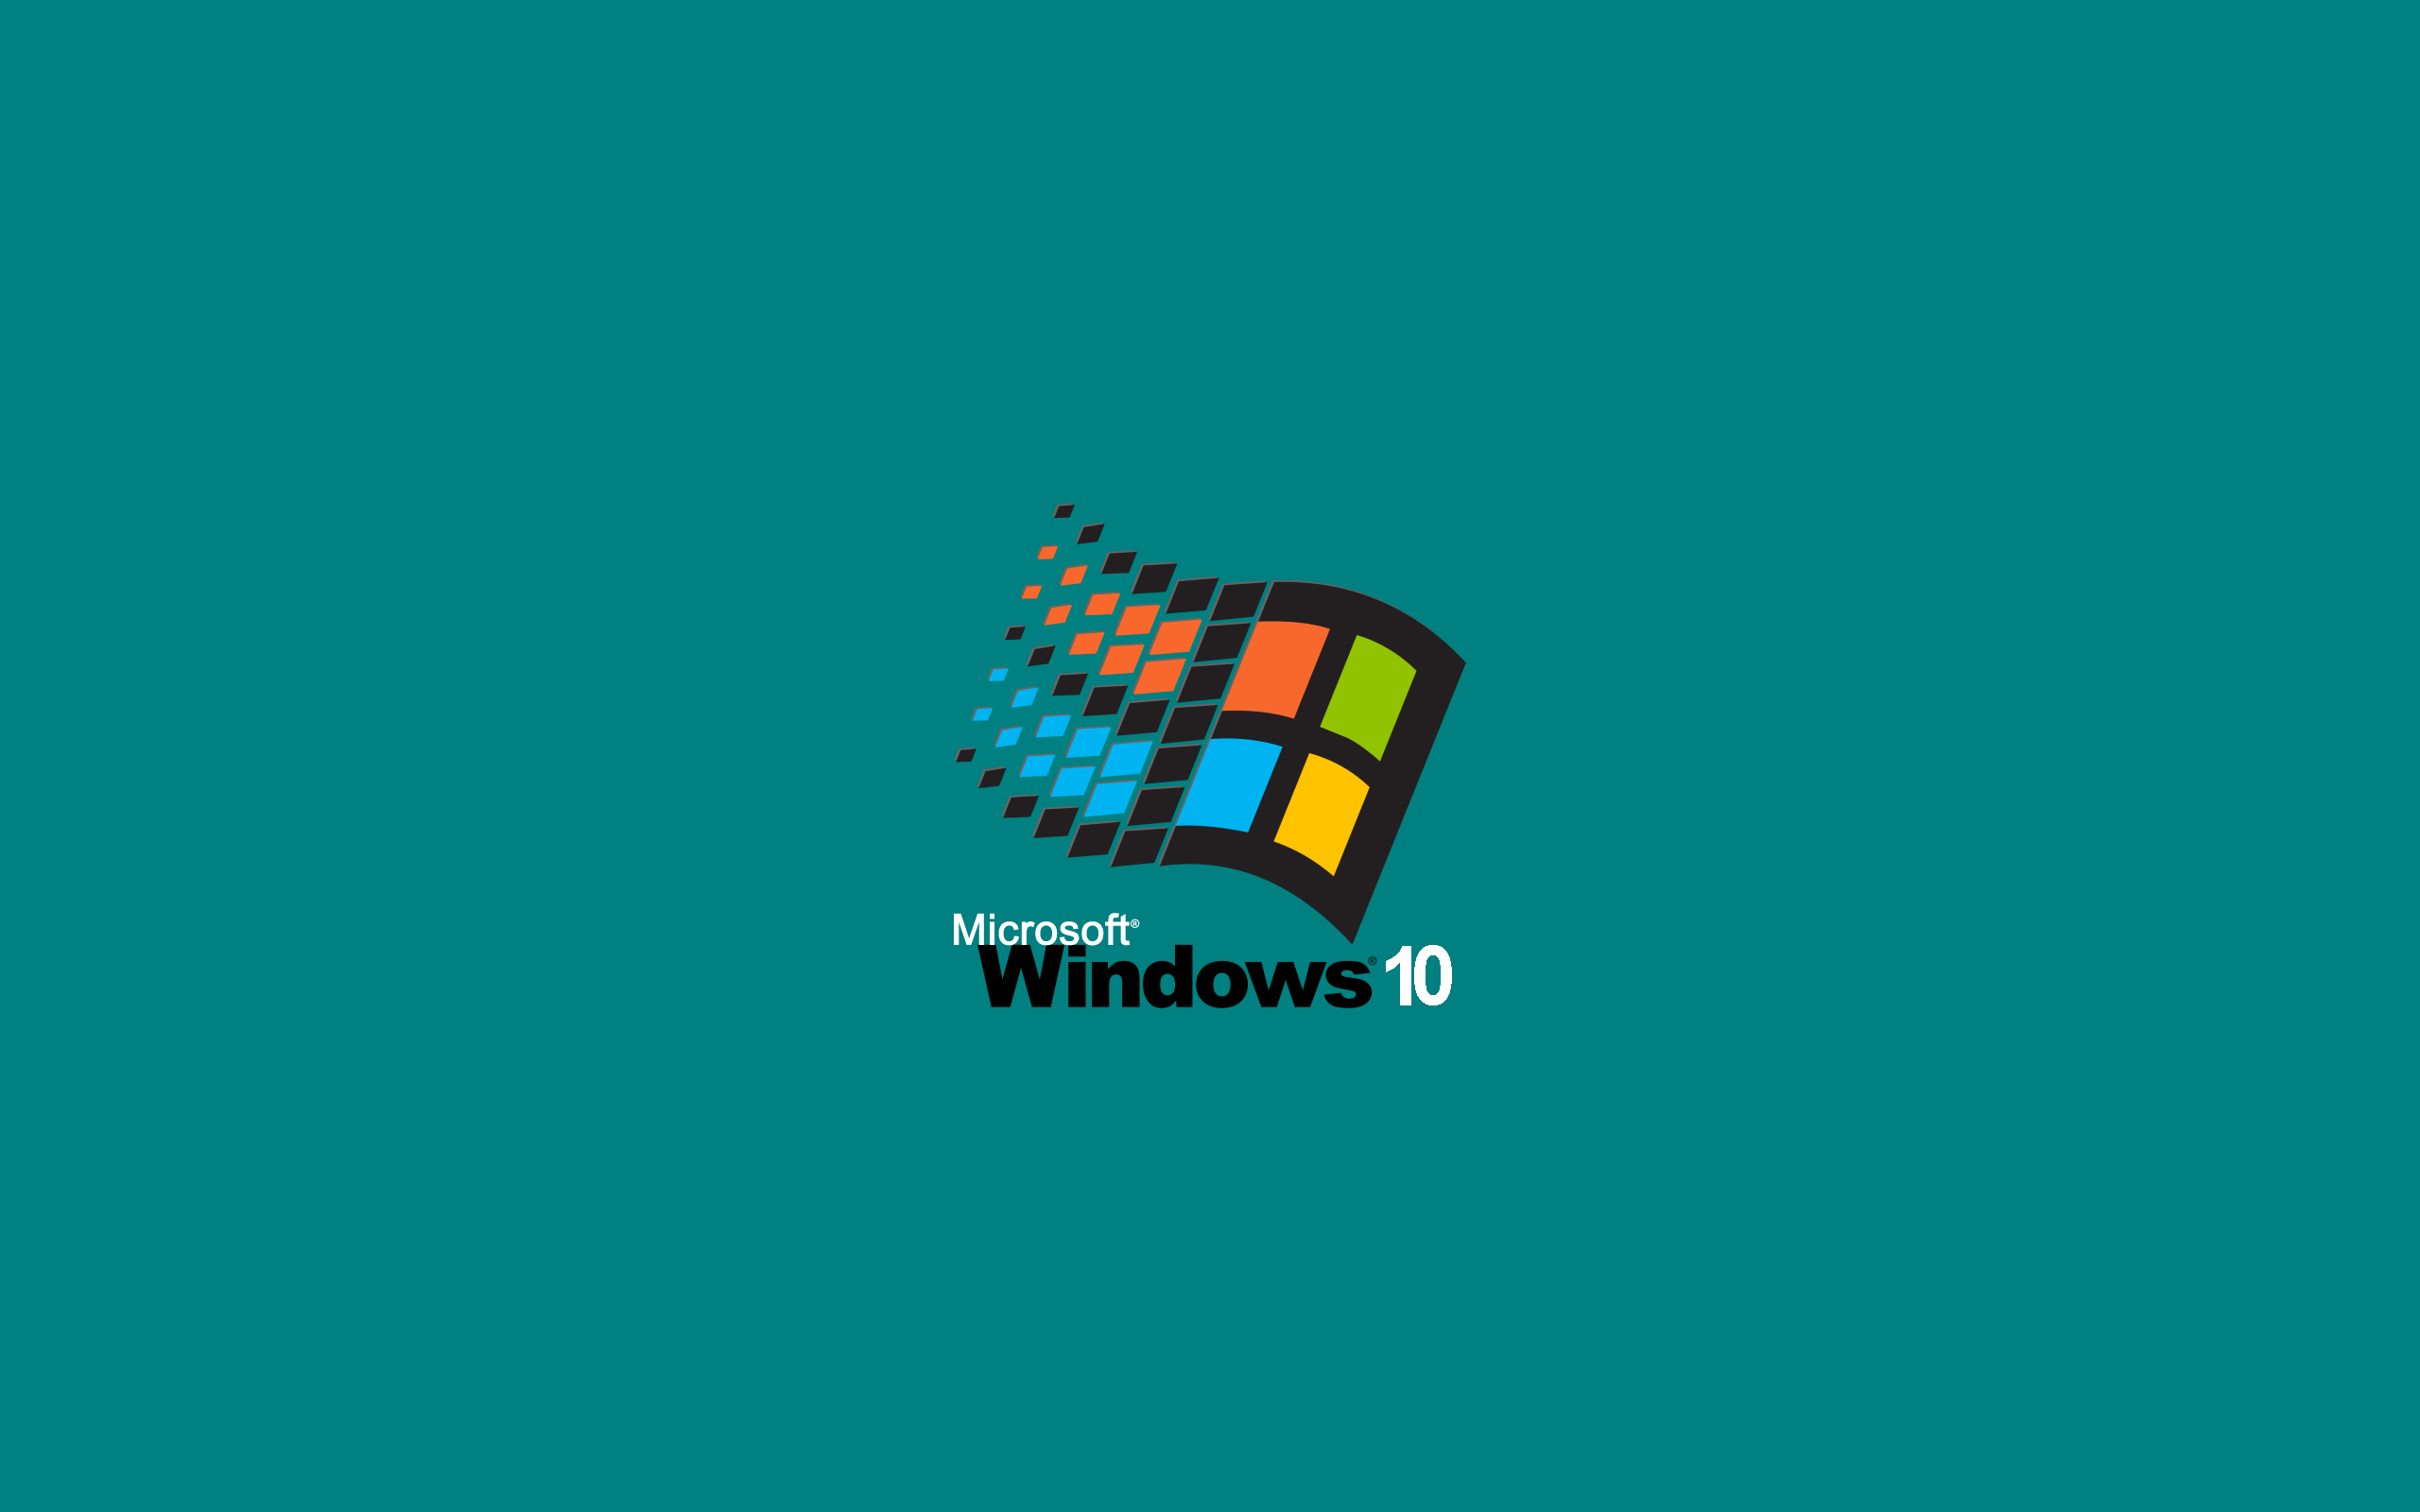 Windows 95 style Windows 10 wallpapers